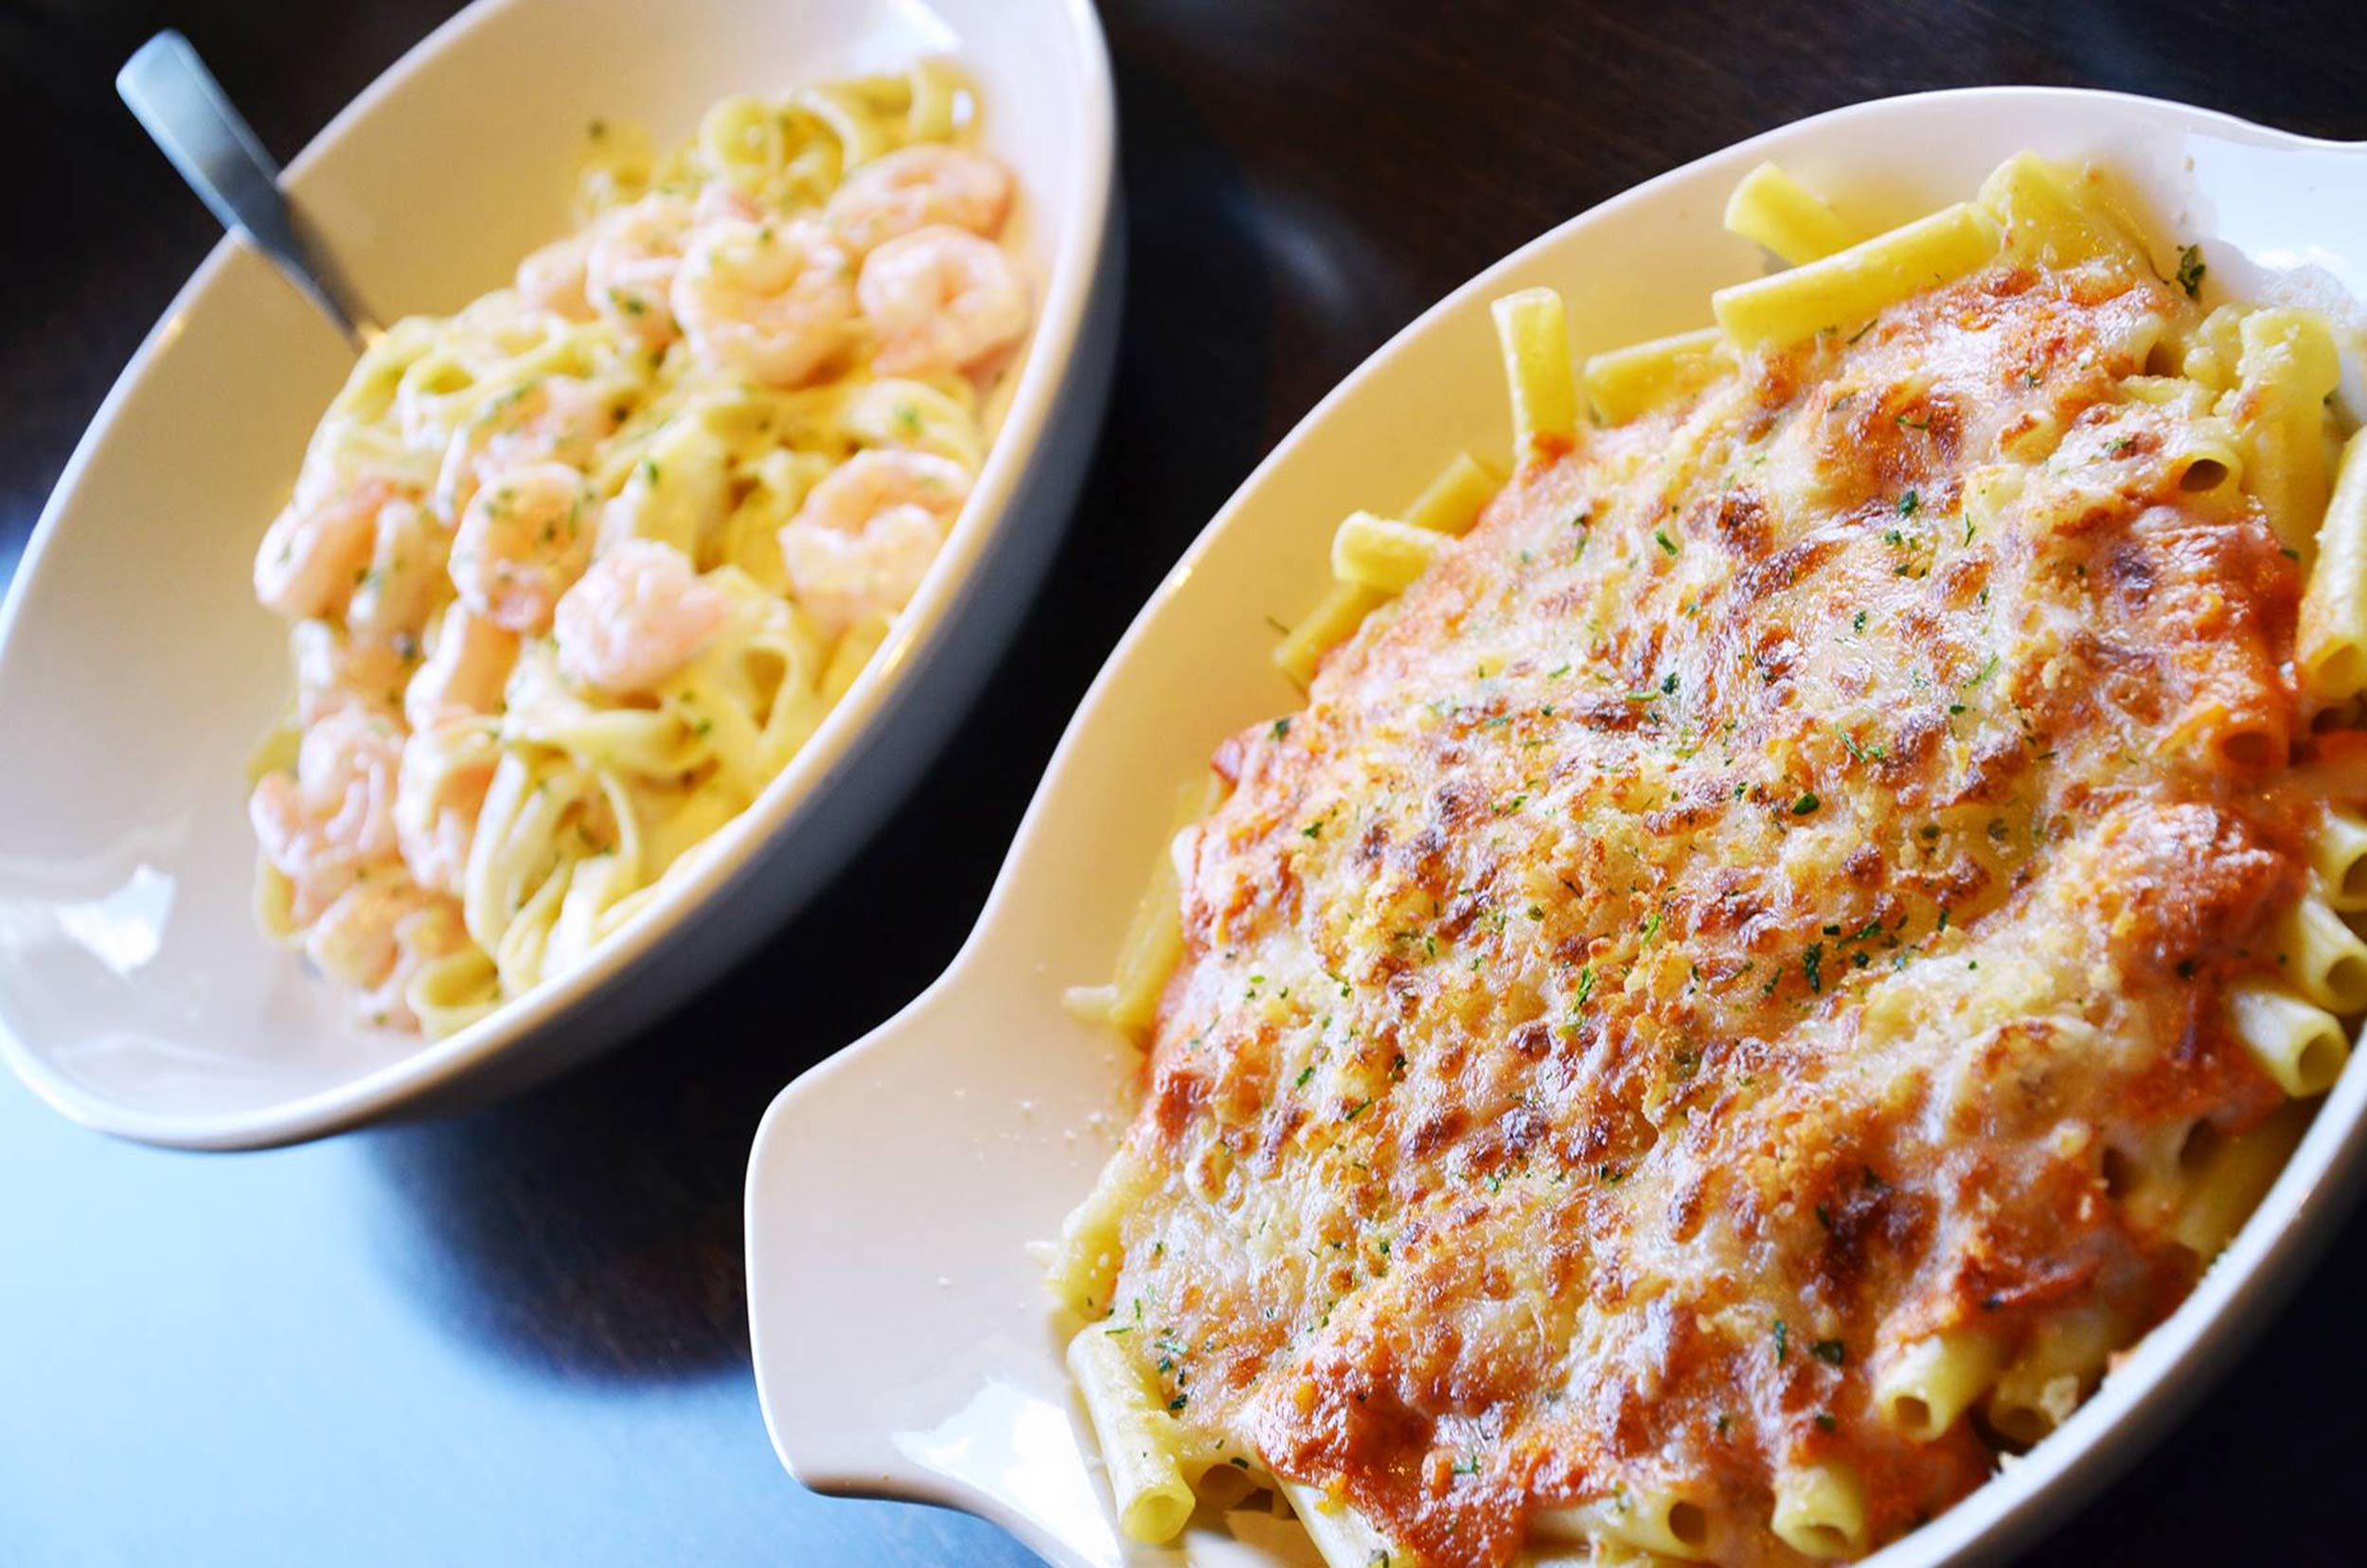 would you a 100 unlimited pasta pass from olive garden